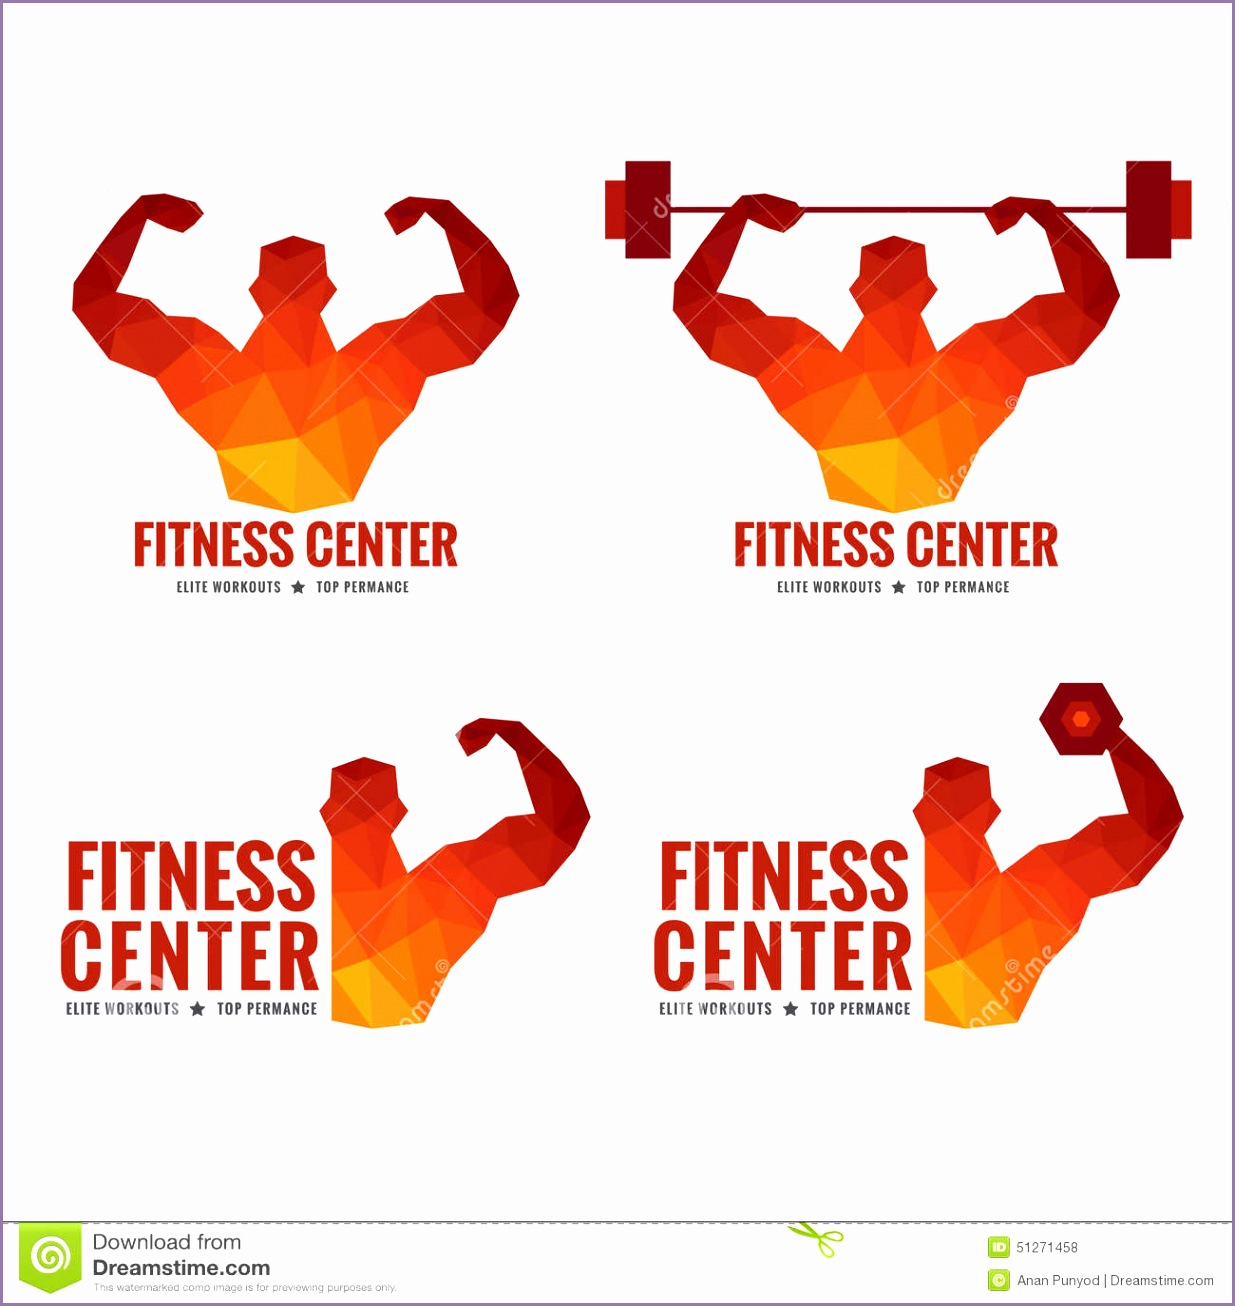 stock illustration fitness center logo men s muscle strength weight lifting low poly art design image